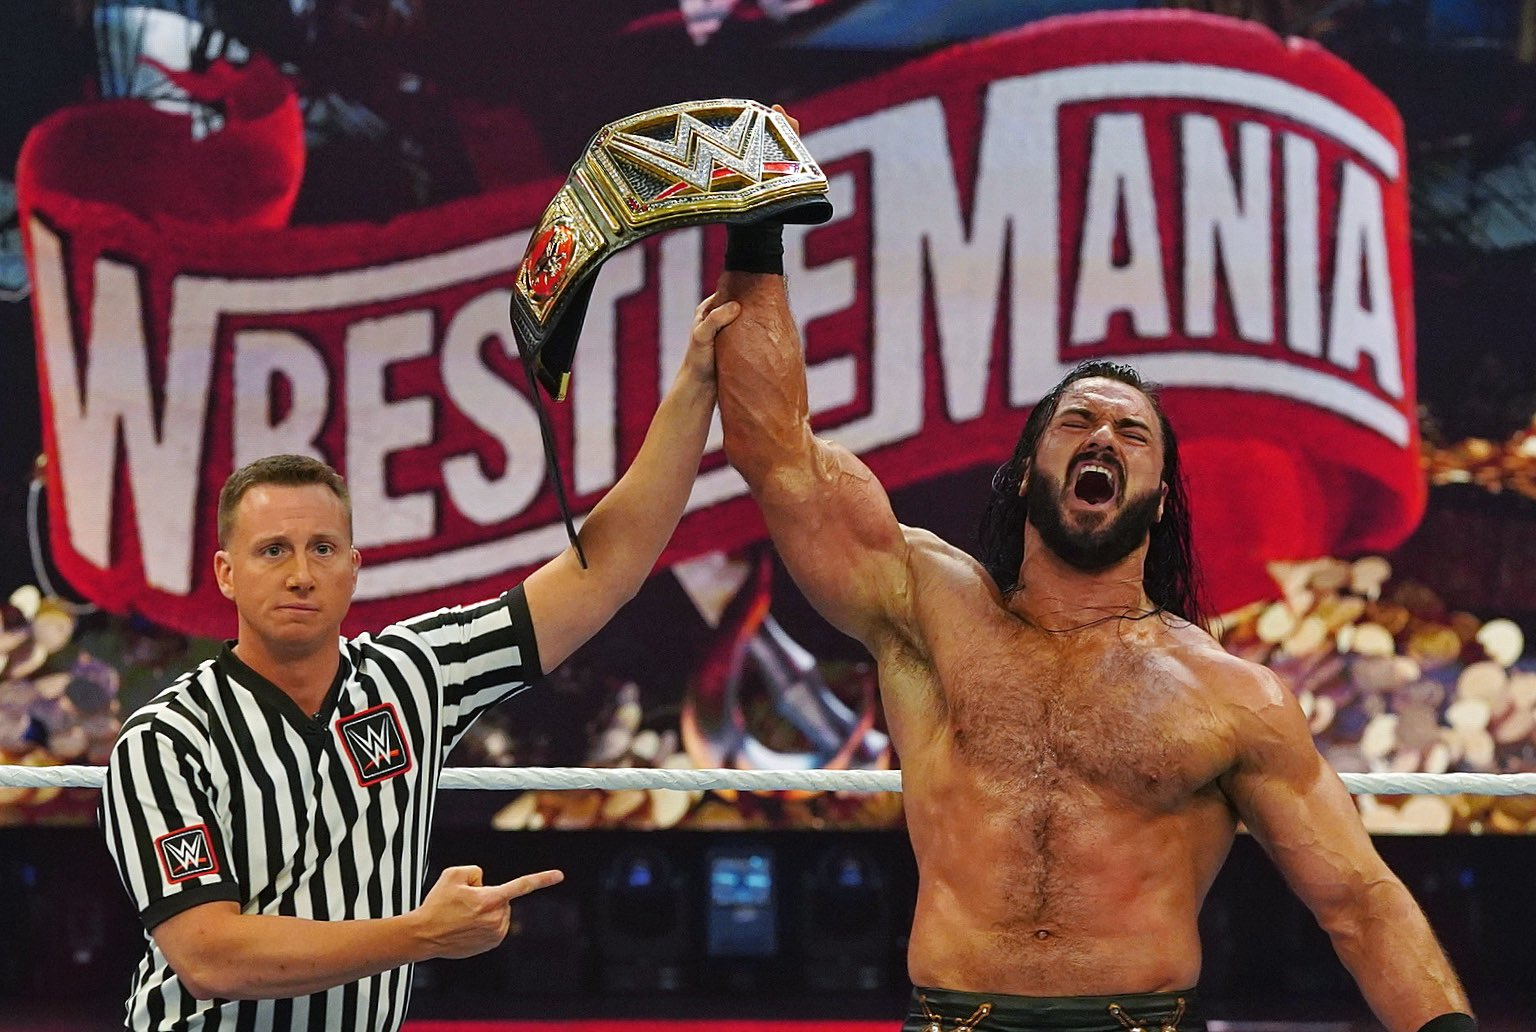 Drew McIntyre And Charlotte Flair Become New Champions At WWE Wrestlemania 1